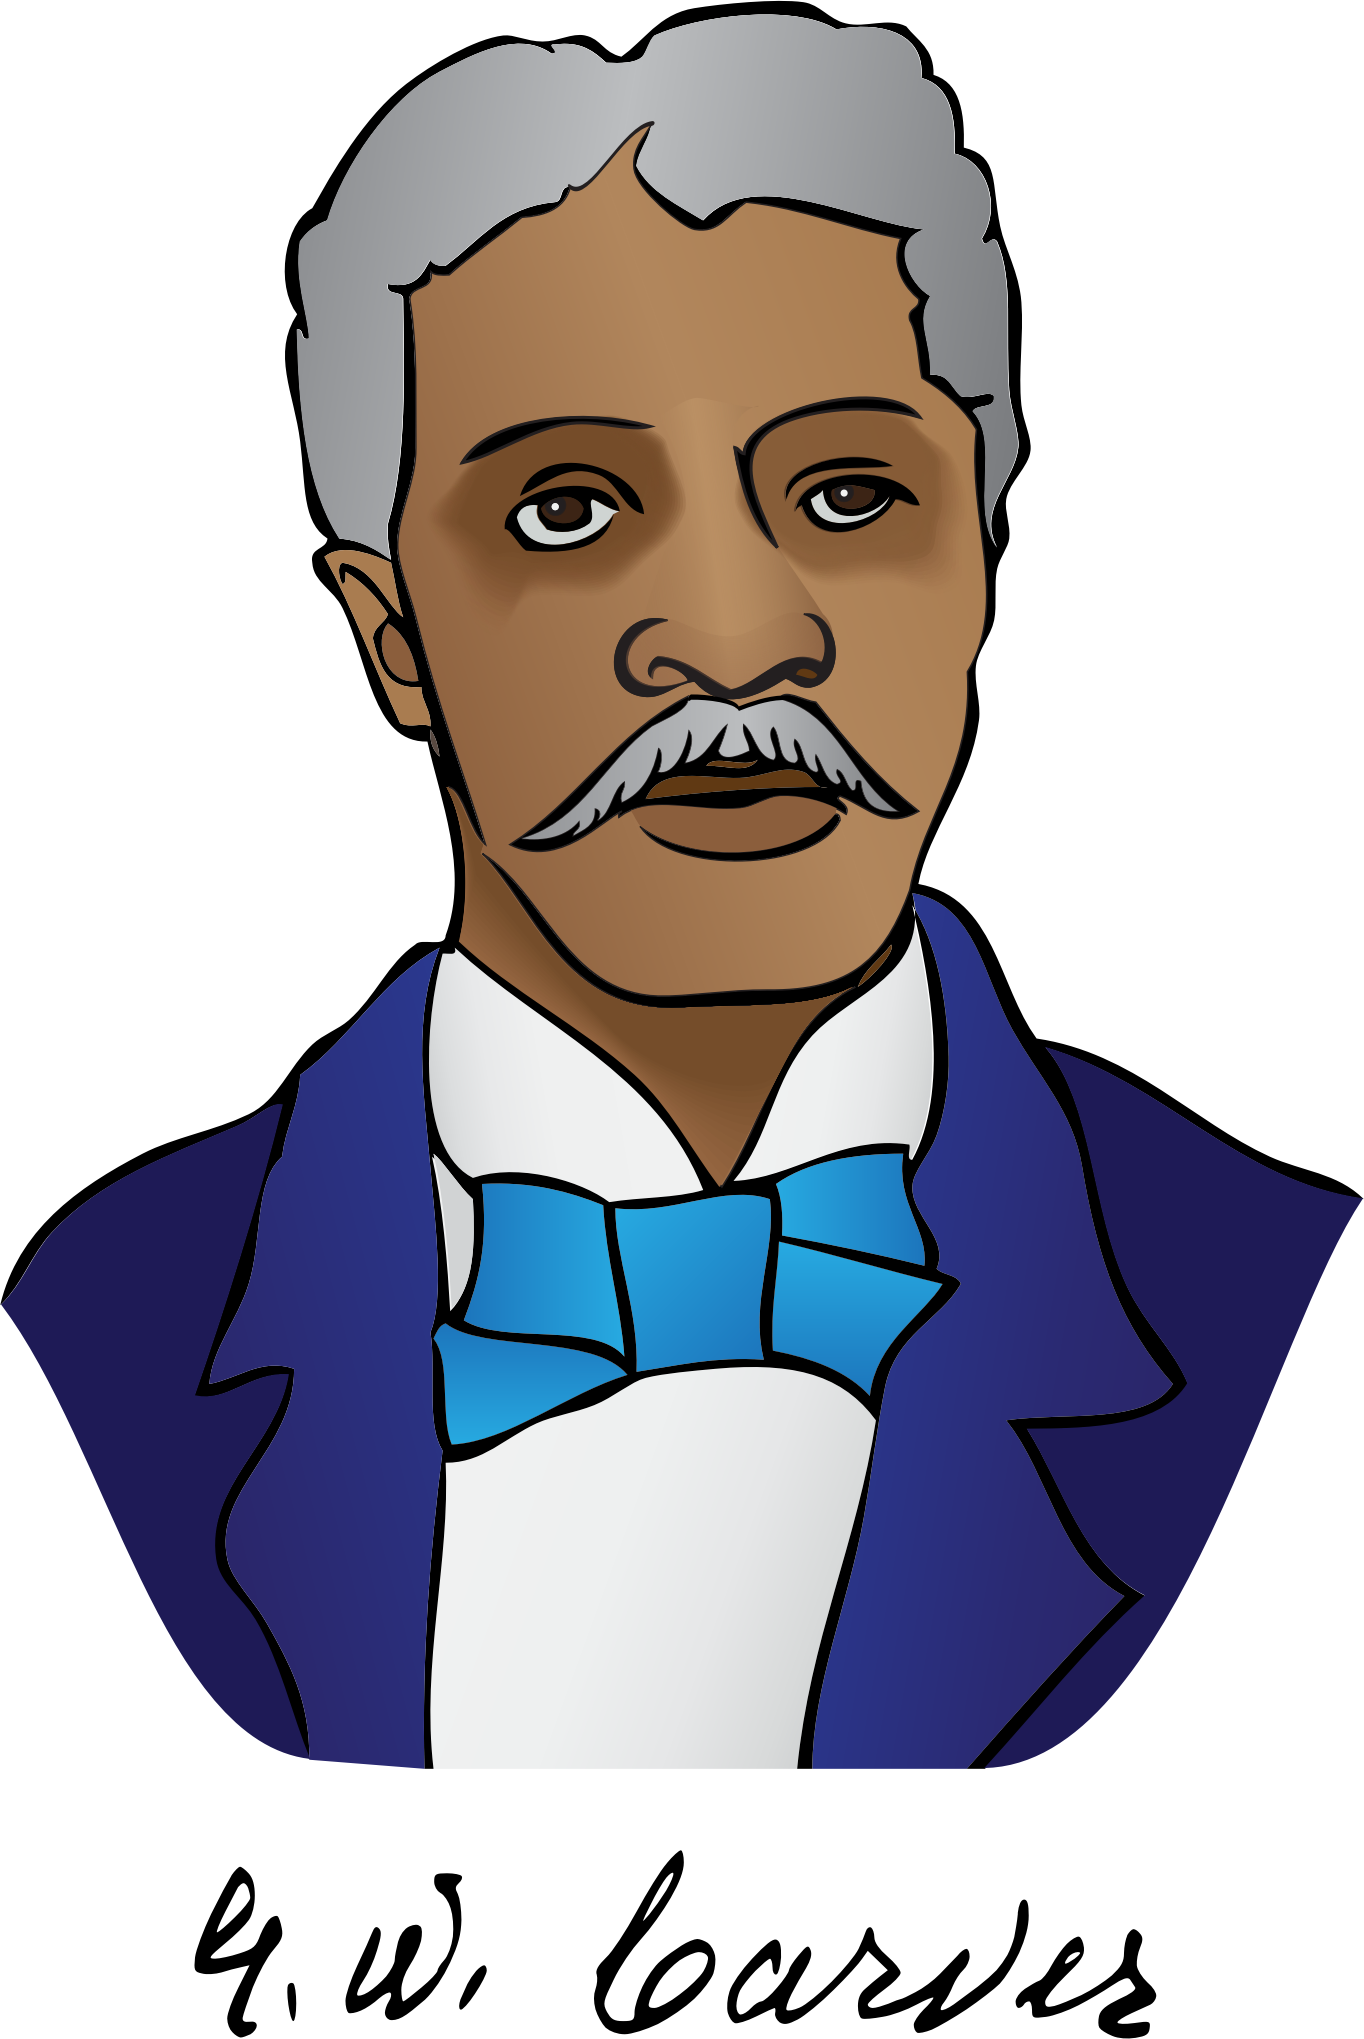 George Washington Carver by bnsonger47